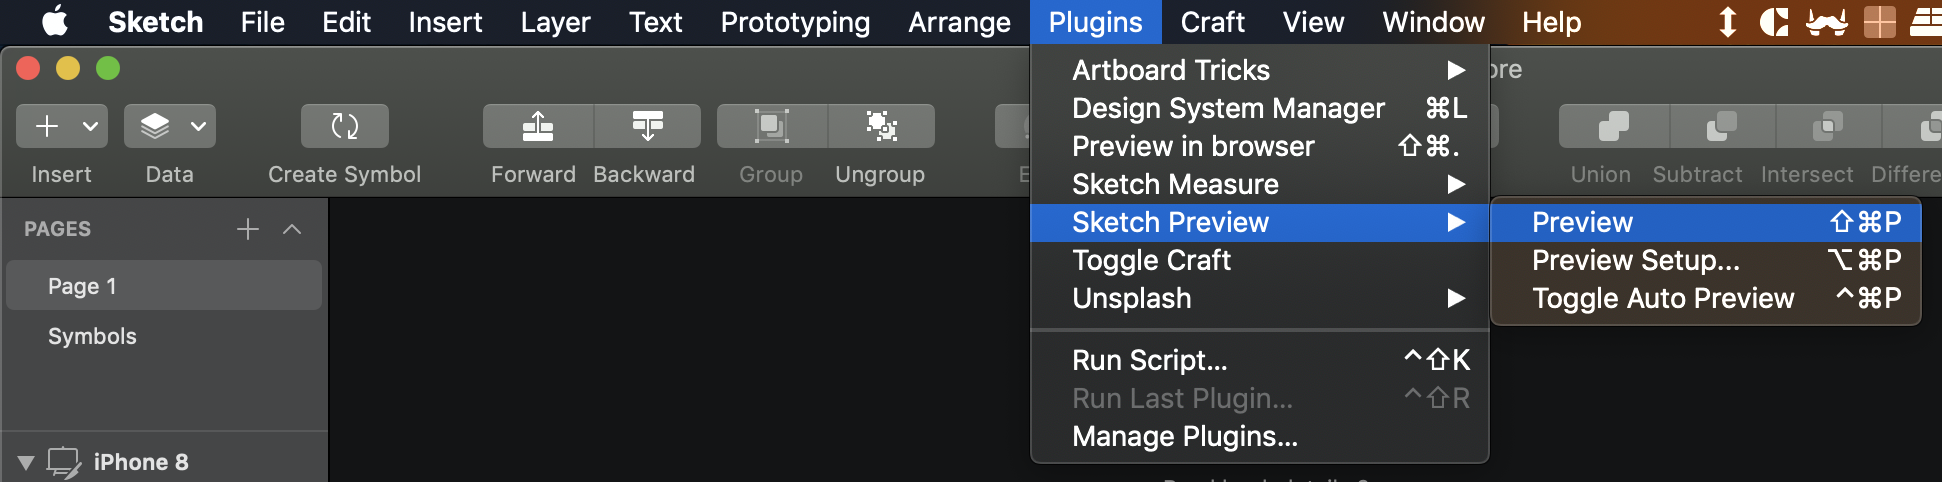 How to download Sketch preview using github